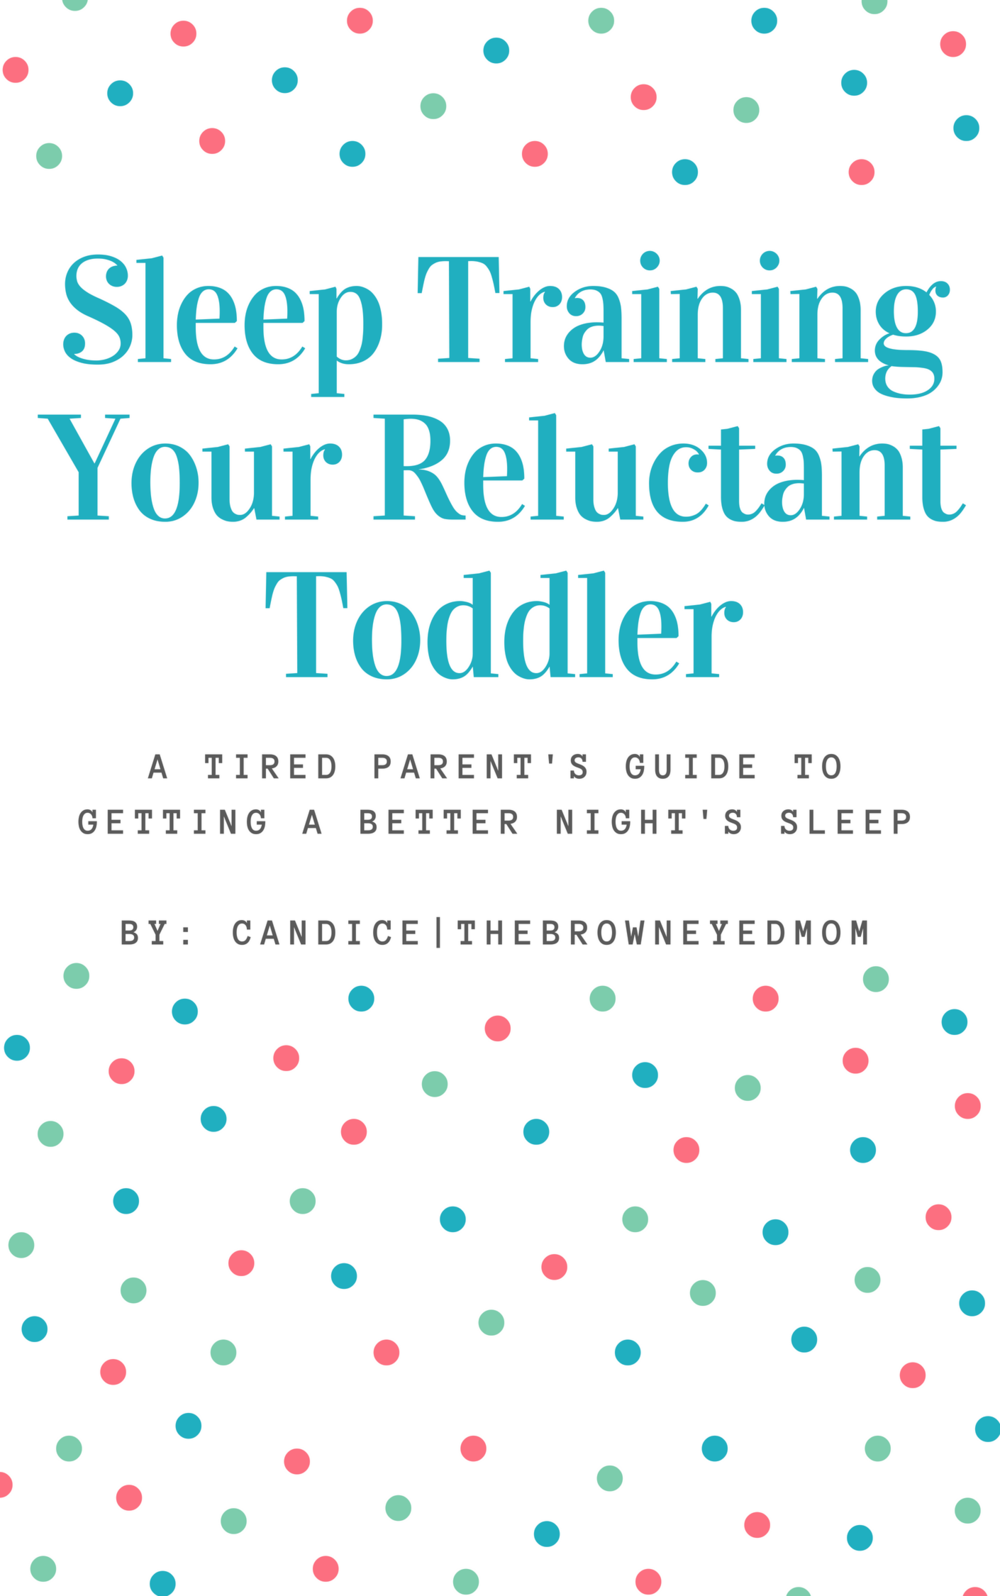 If it takes you hours to get your toddler to sleep or they wake up constantly through the night needing you, this e-book is just for you! #sleeptraining #toddler #toddlersleep #parenting #sahm